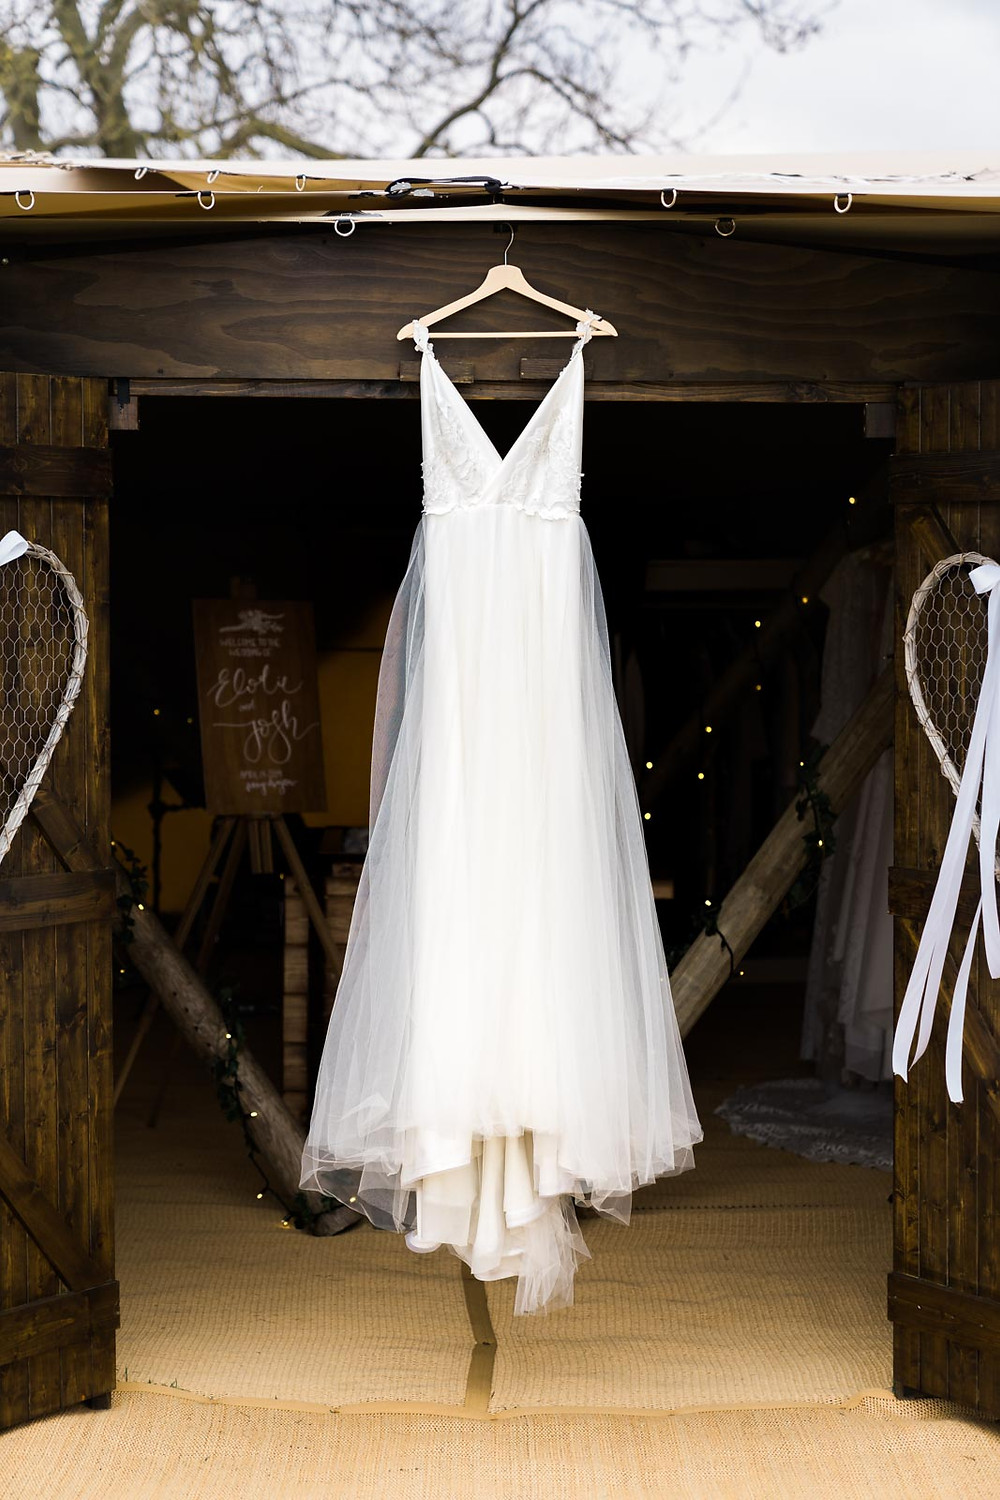 Full length white wedding dress hanging on tipi wedding venue in the Leicestershire countryside.